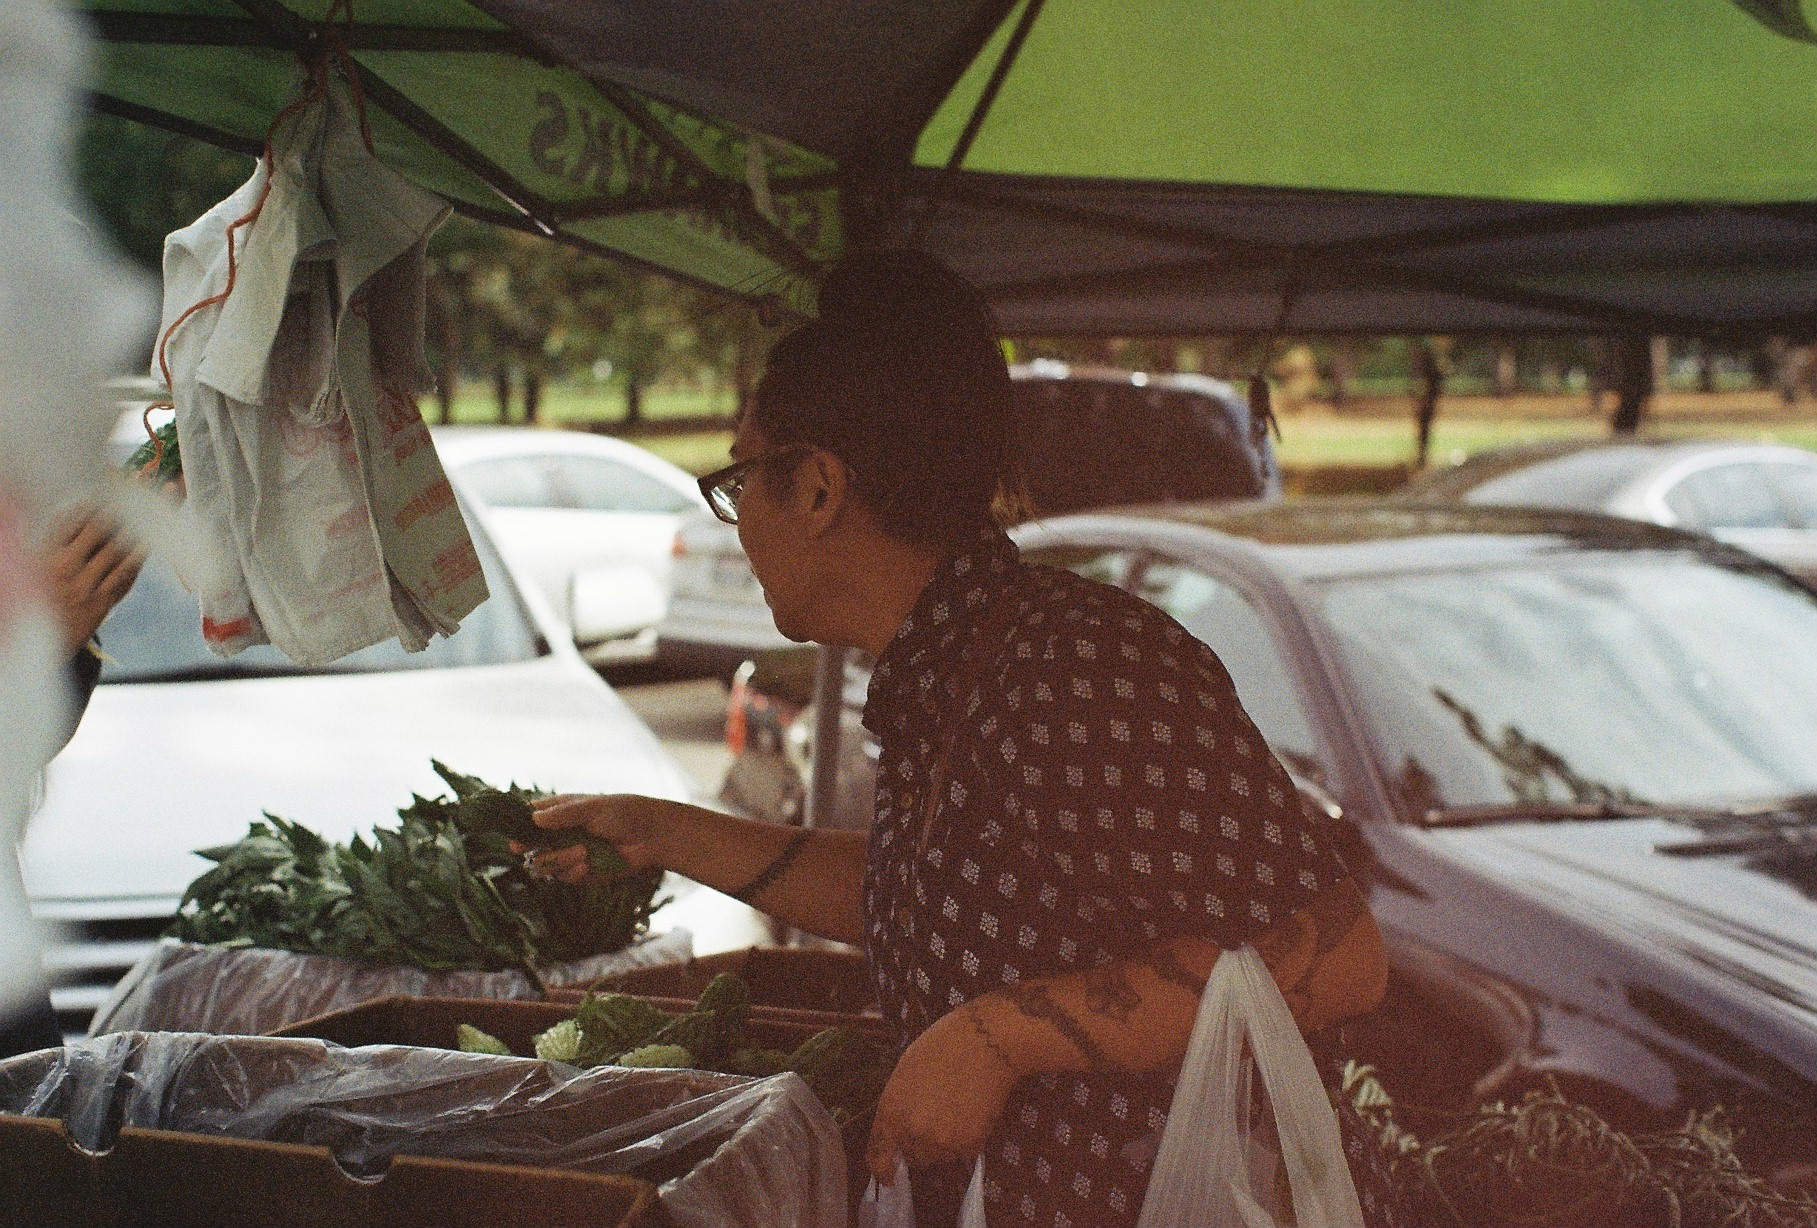 The author visiting Auntie L.'s tent, one of the Ilokano farmers at the Filipino Farmers Market in Seattle, WA. The farmers hail from generations of Filipino-Americans who settled in Wapato, WA who continue to farm there. / Photo by Thanh Hằng Phạm